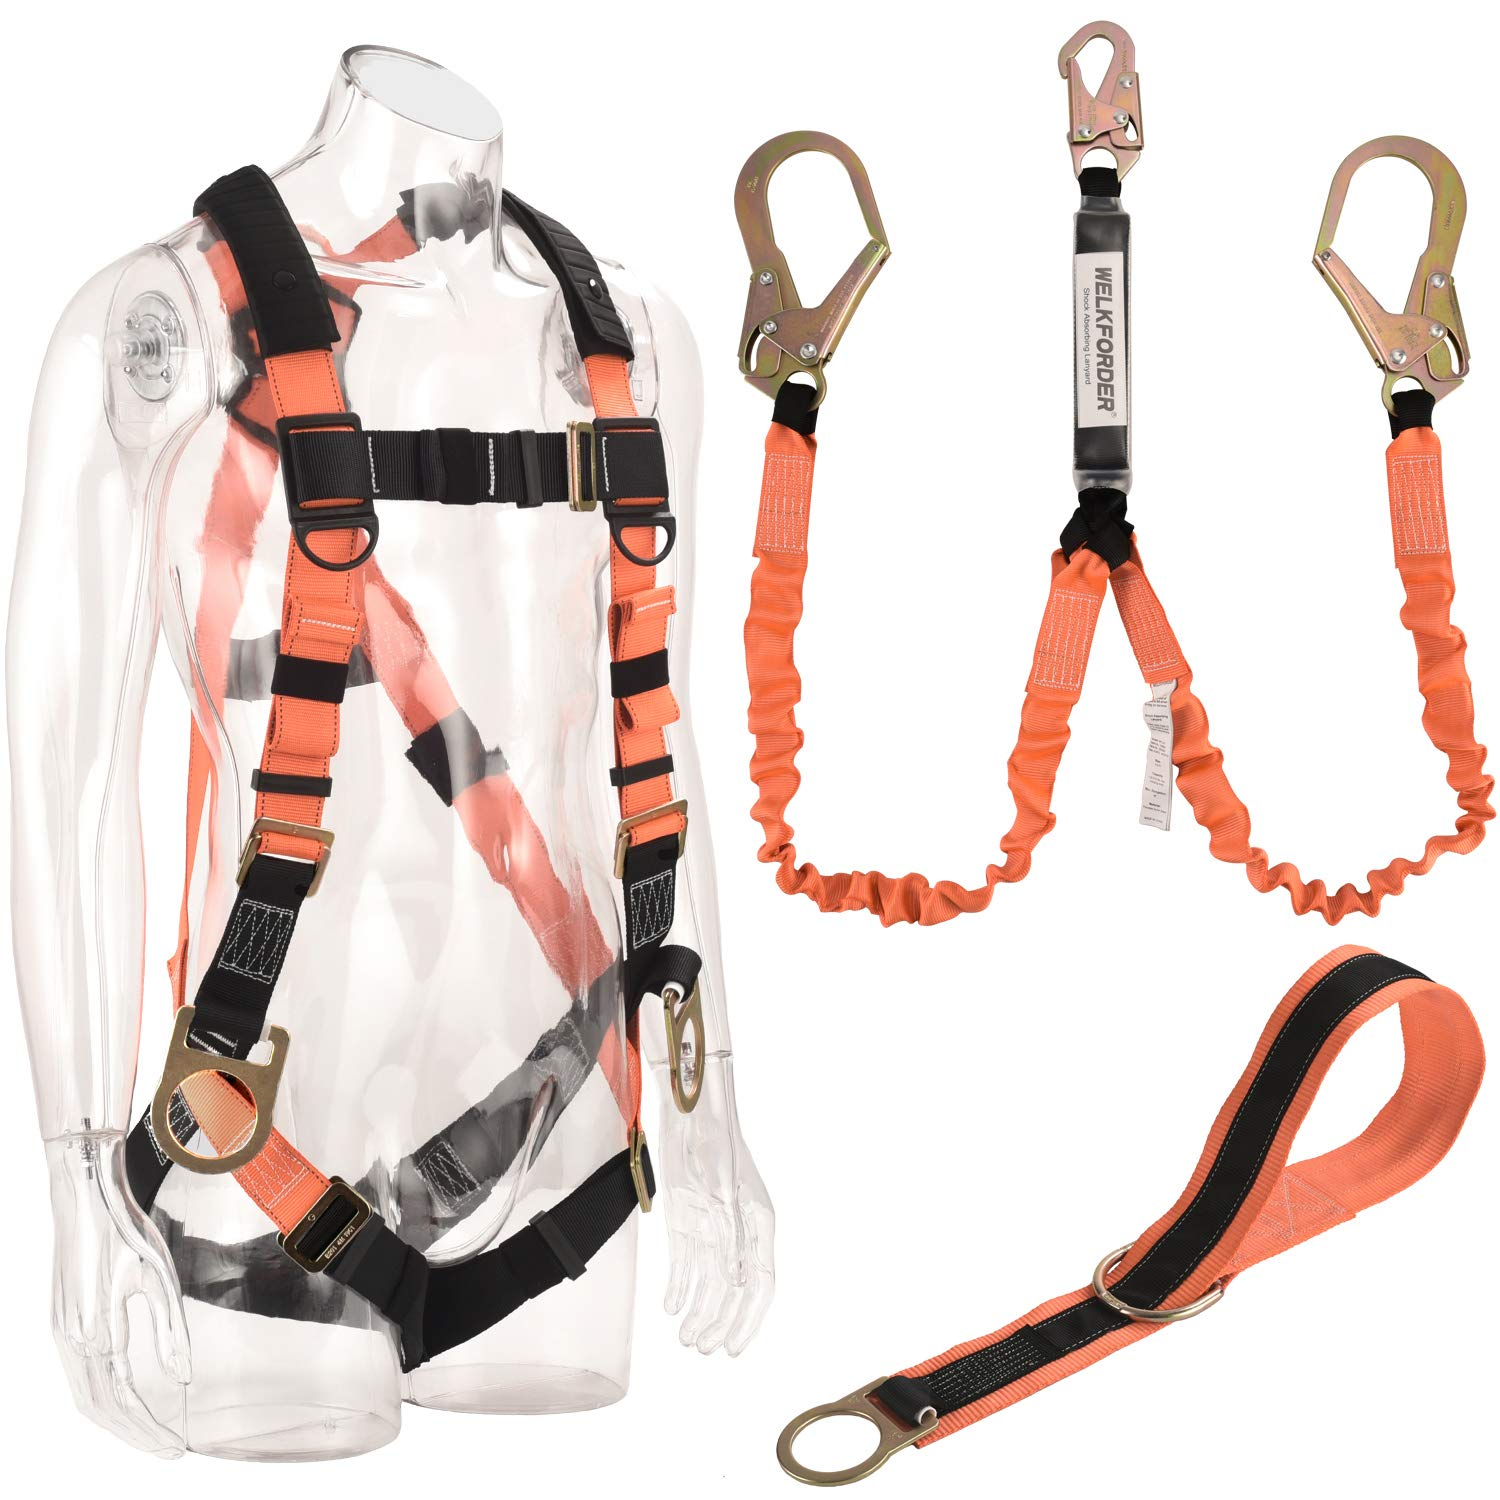 WELKFORDER 3D-Rings Industrial Fall Protection Safety Harness Kit With Double Leg 6-Foot Shock Absorber Stretch Lanyard | 4-Foot Anchor ANSI Compliant Personal Fall Arrest System(PFAS)